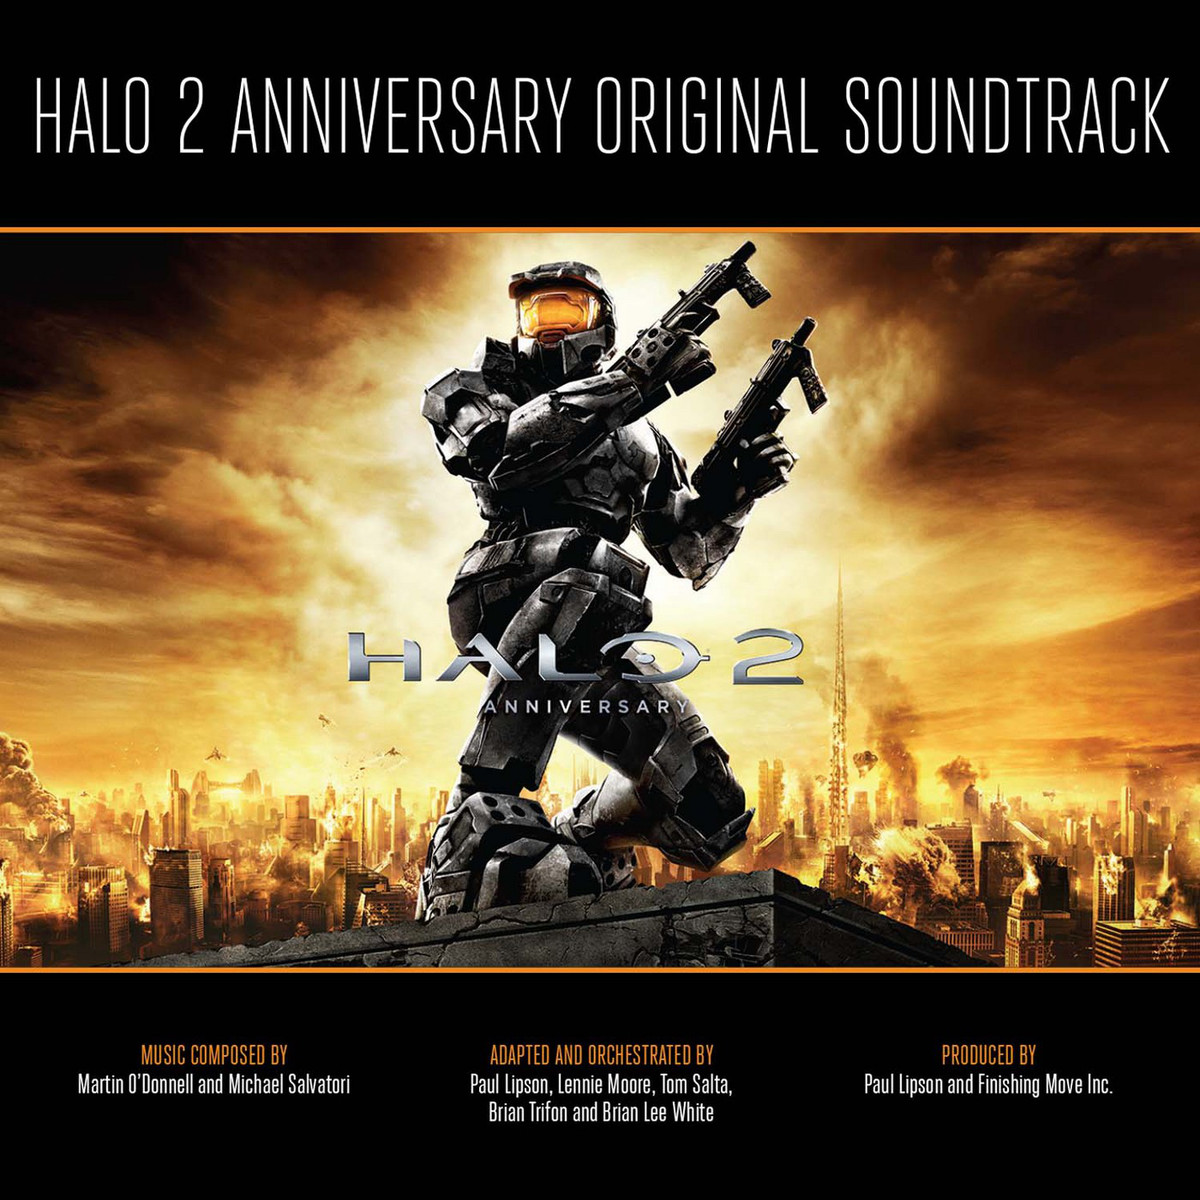 Halo-2-Anniversary-Original-Soundtrack__cover1200x1200.jpg